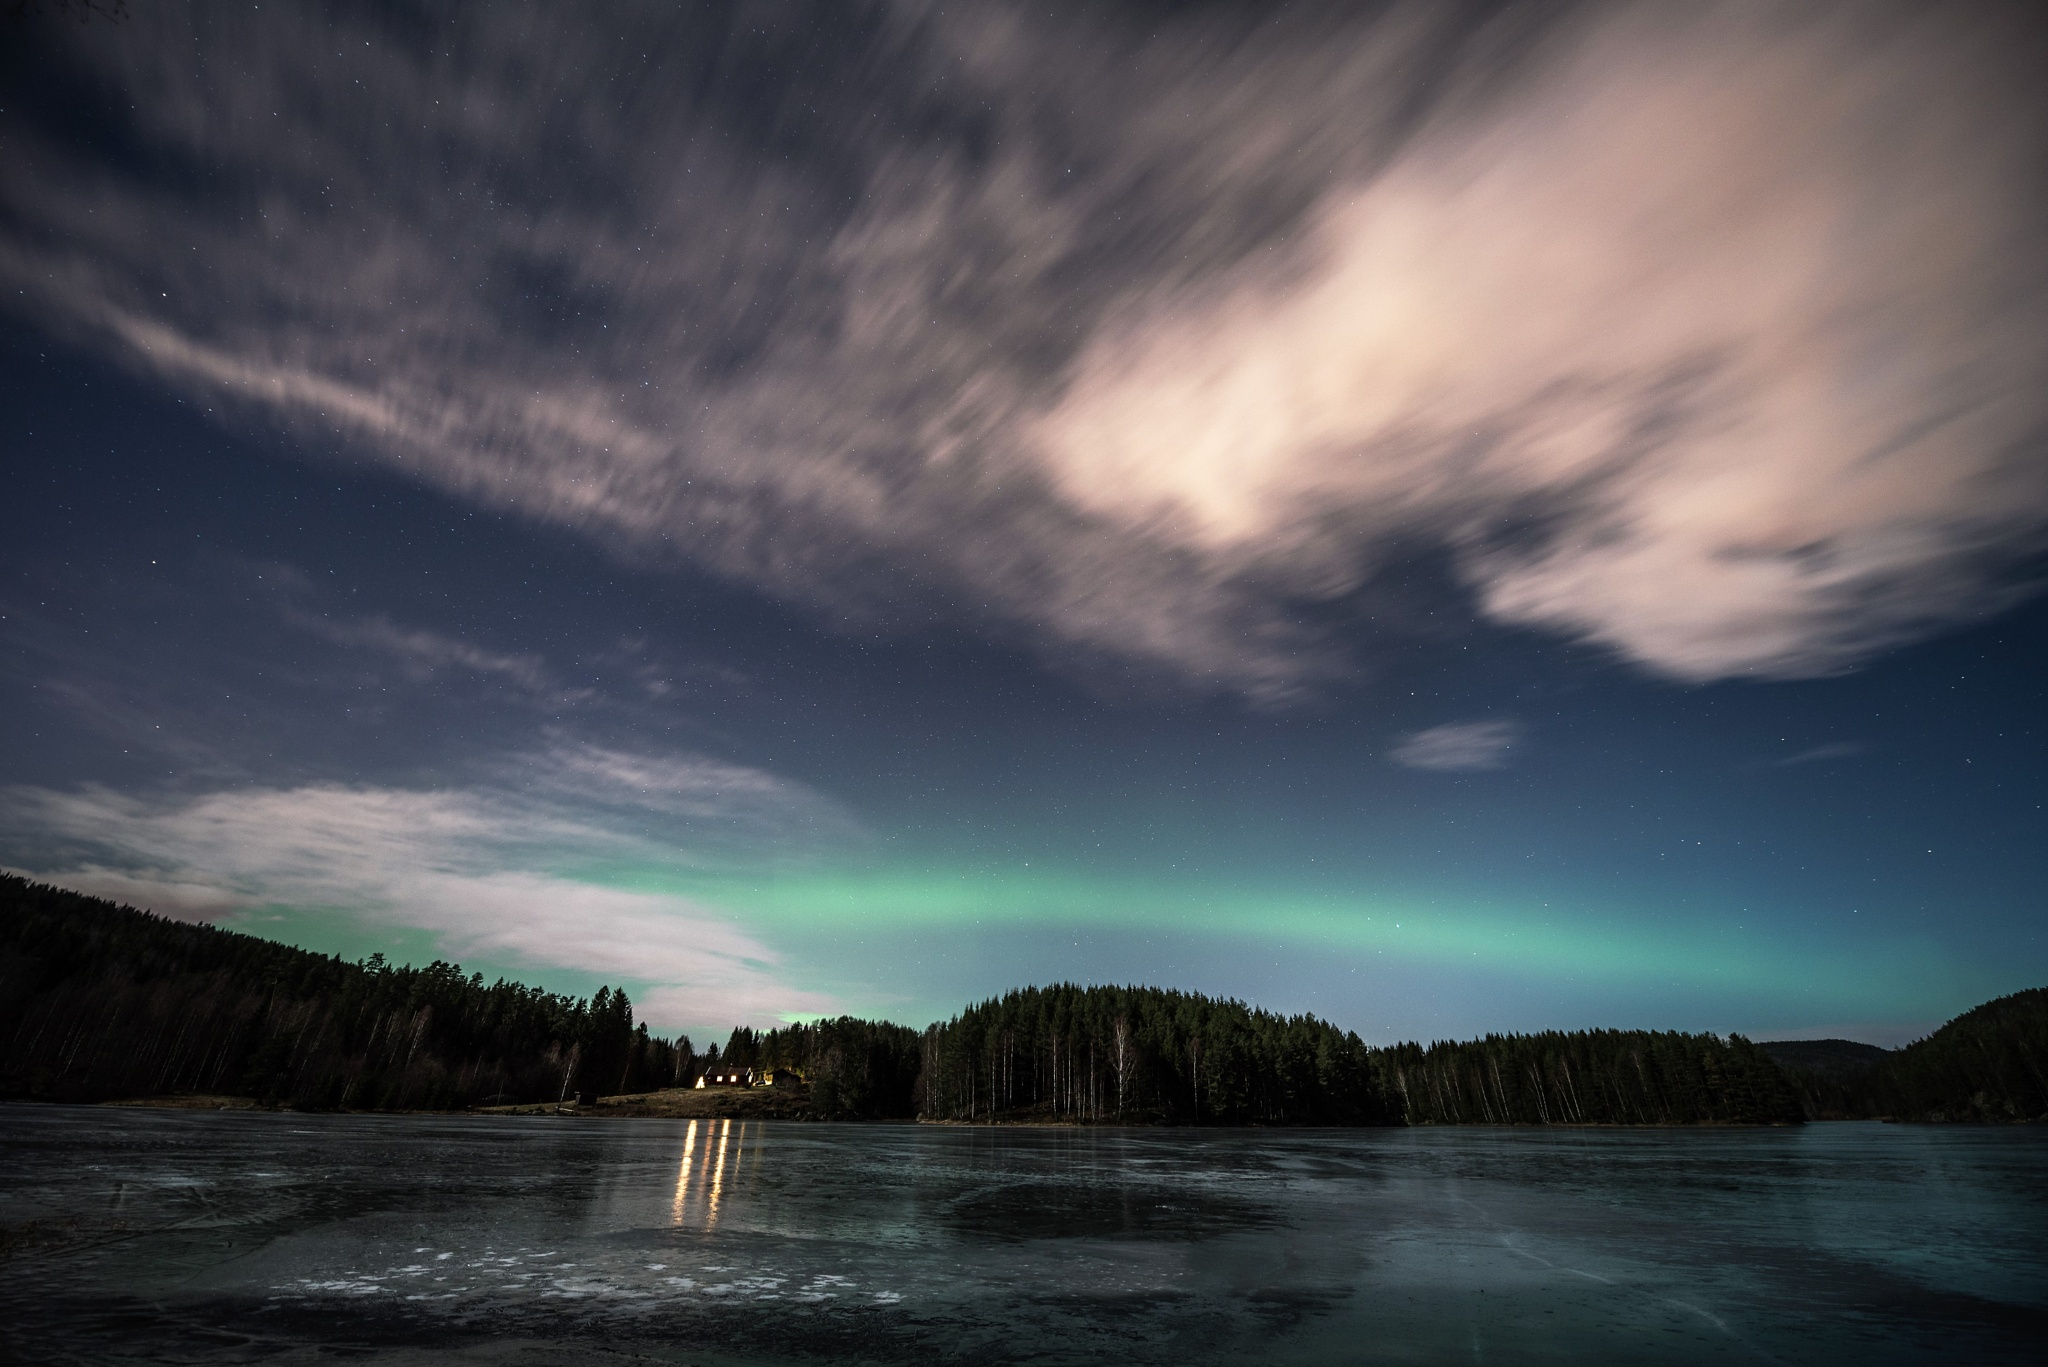 Evening with a strike of green by E Pedersen